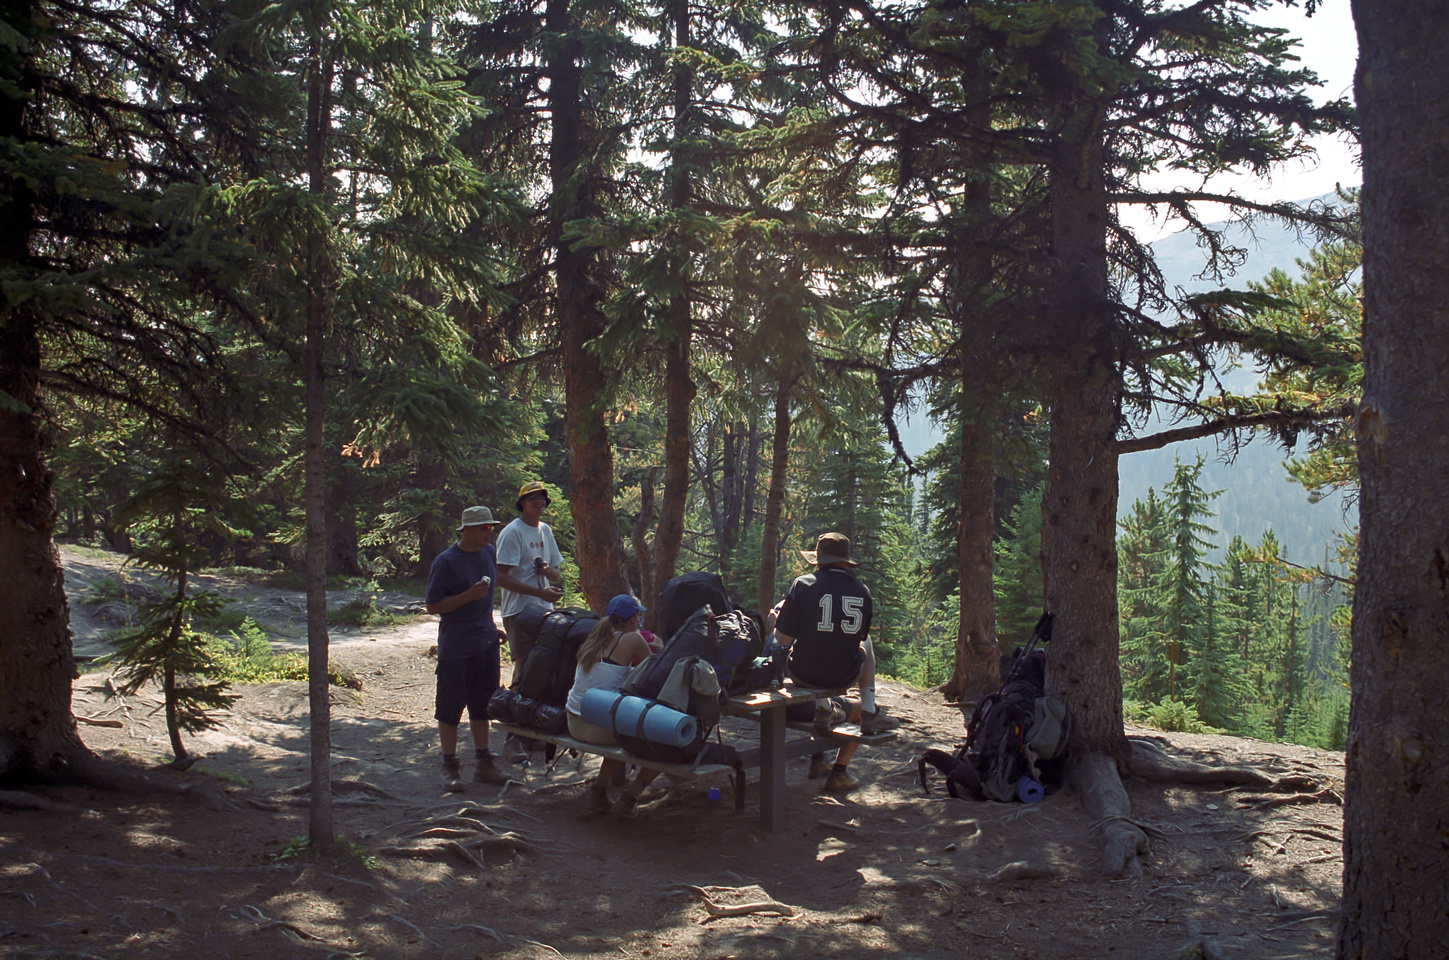 The group takes a break at the Evelyn Creek campground.